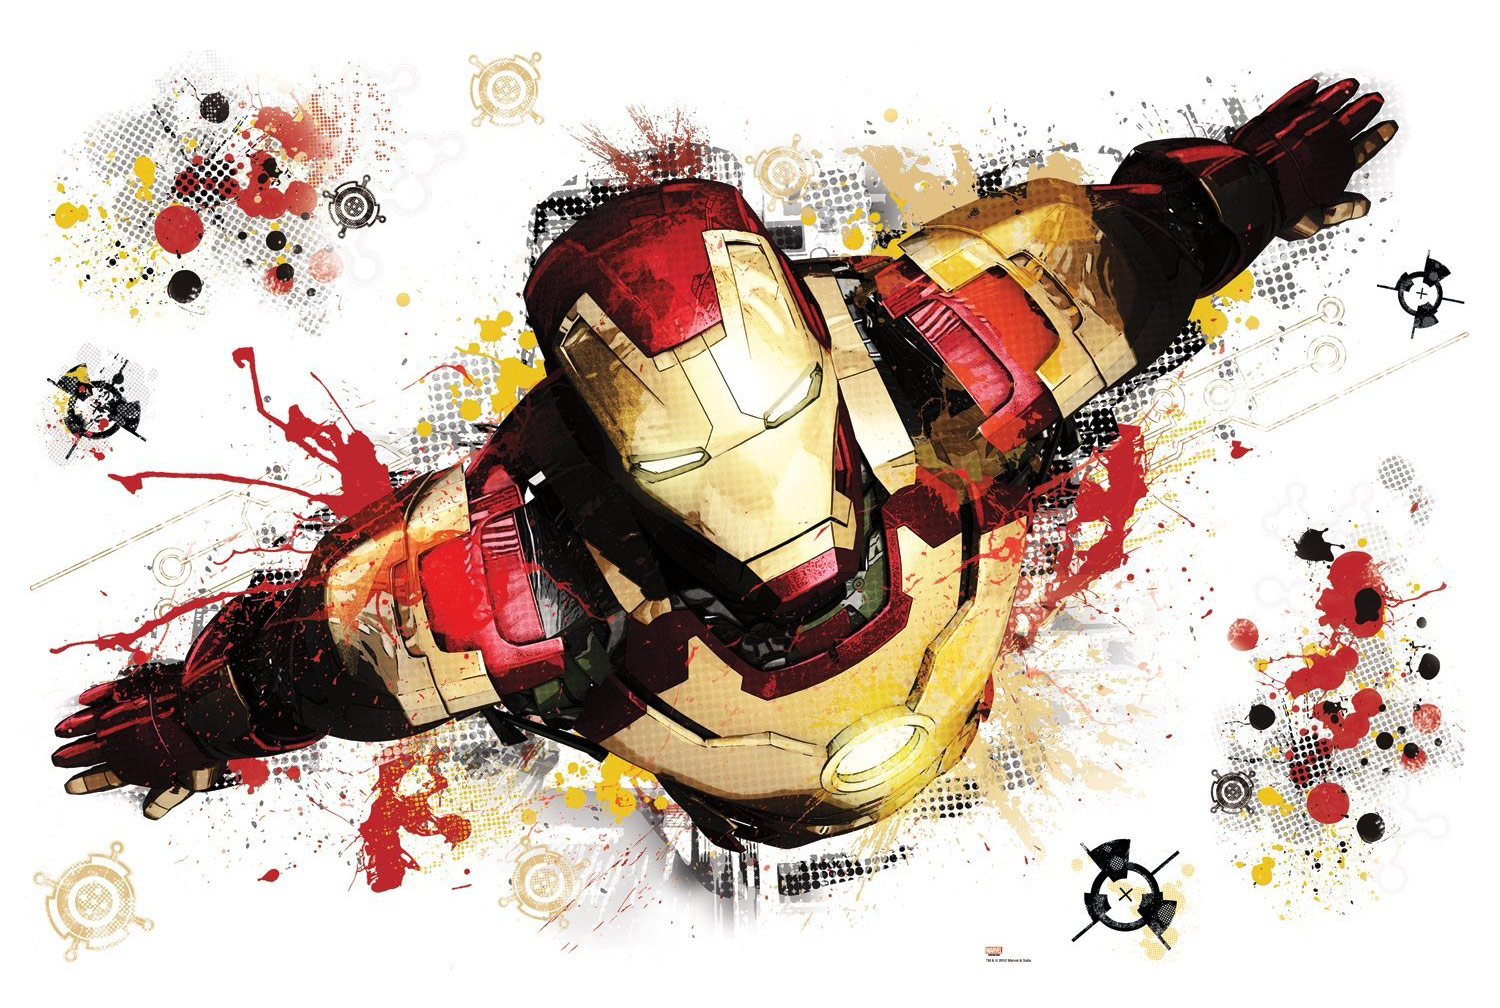 Star Wars Lego Wall Stickers Iron Man 3 Giant Peel And Stick Wall Decal